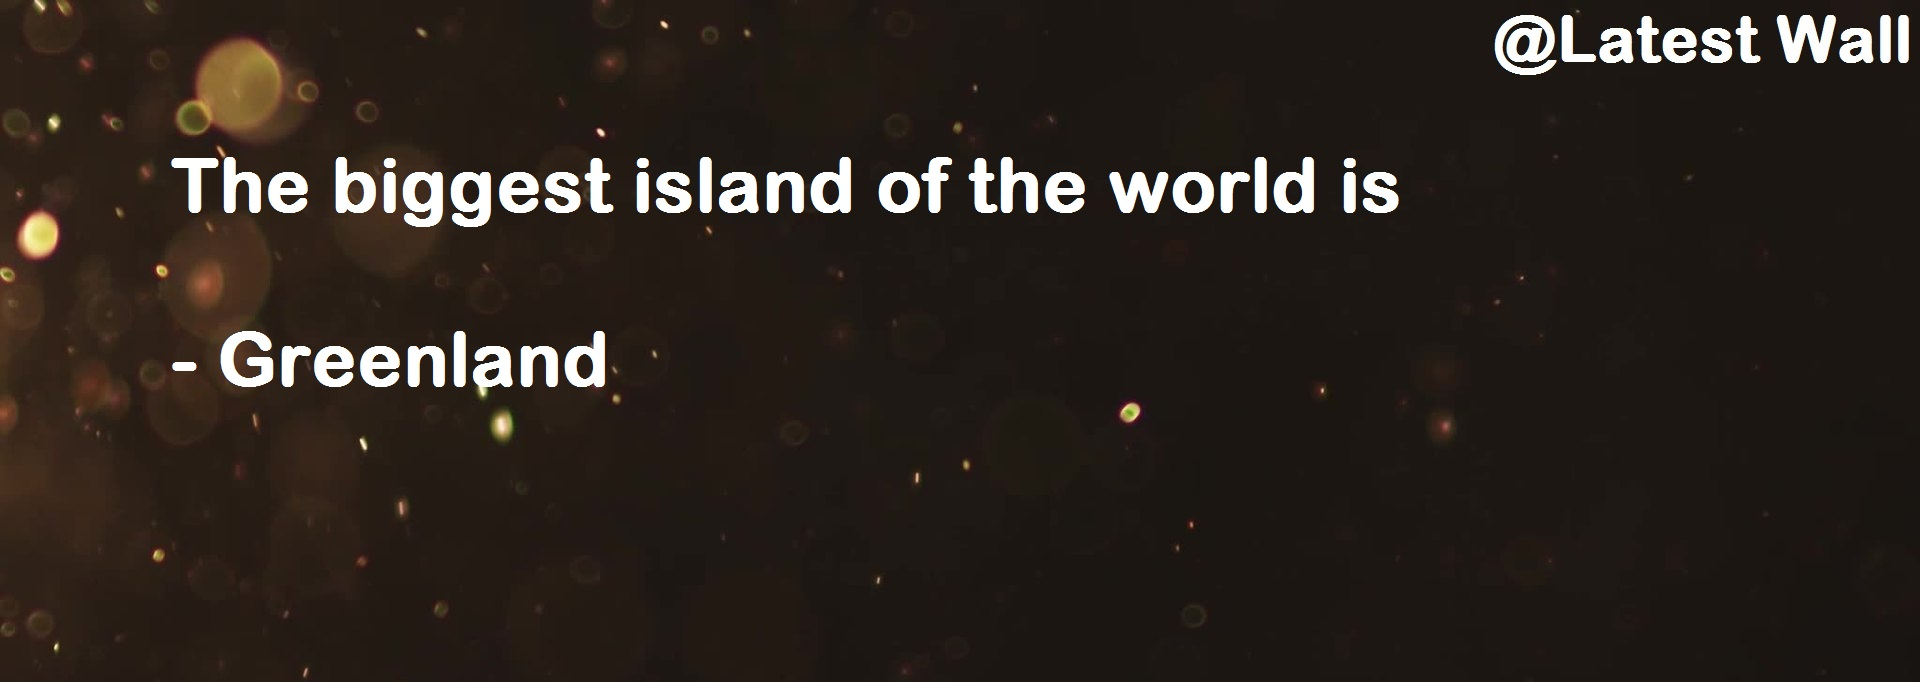 The biggest island of the world is